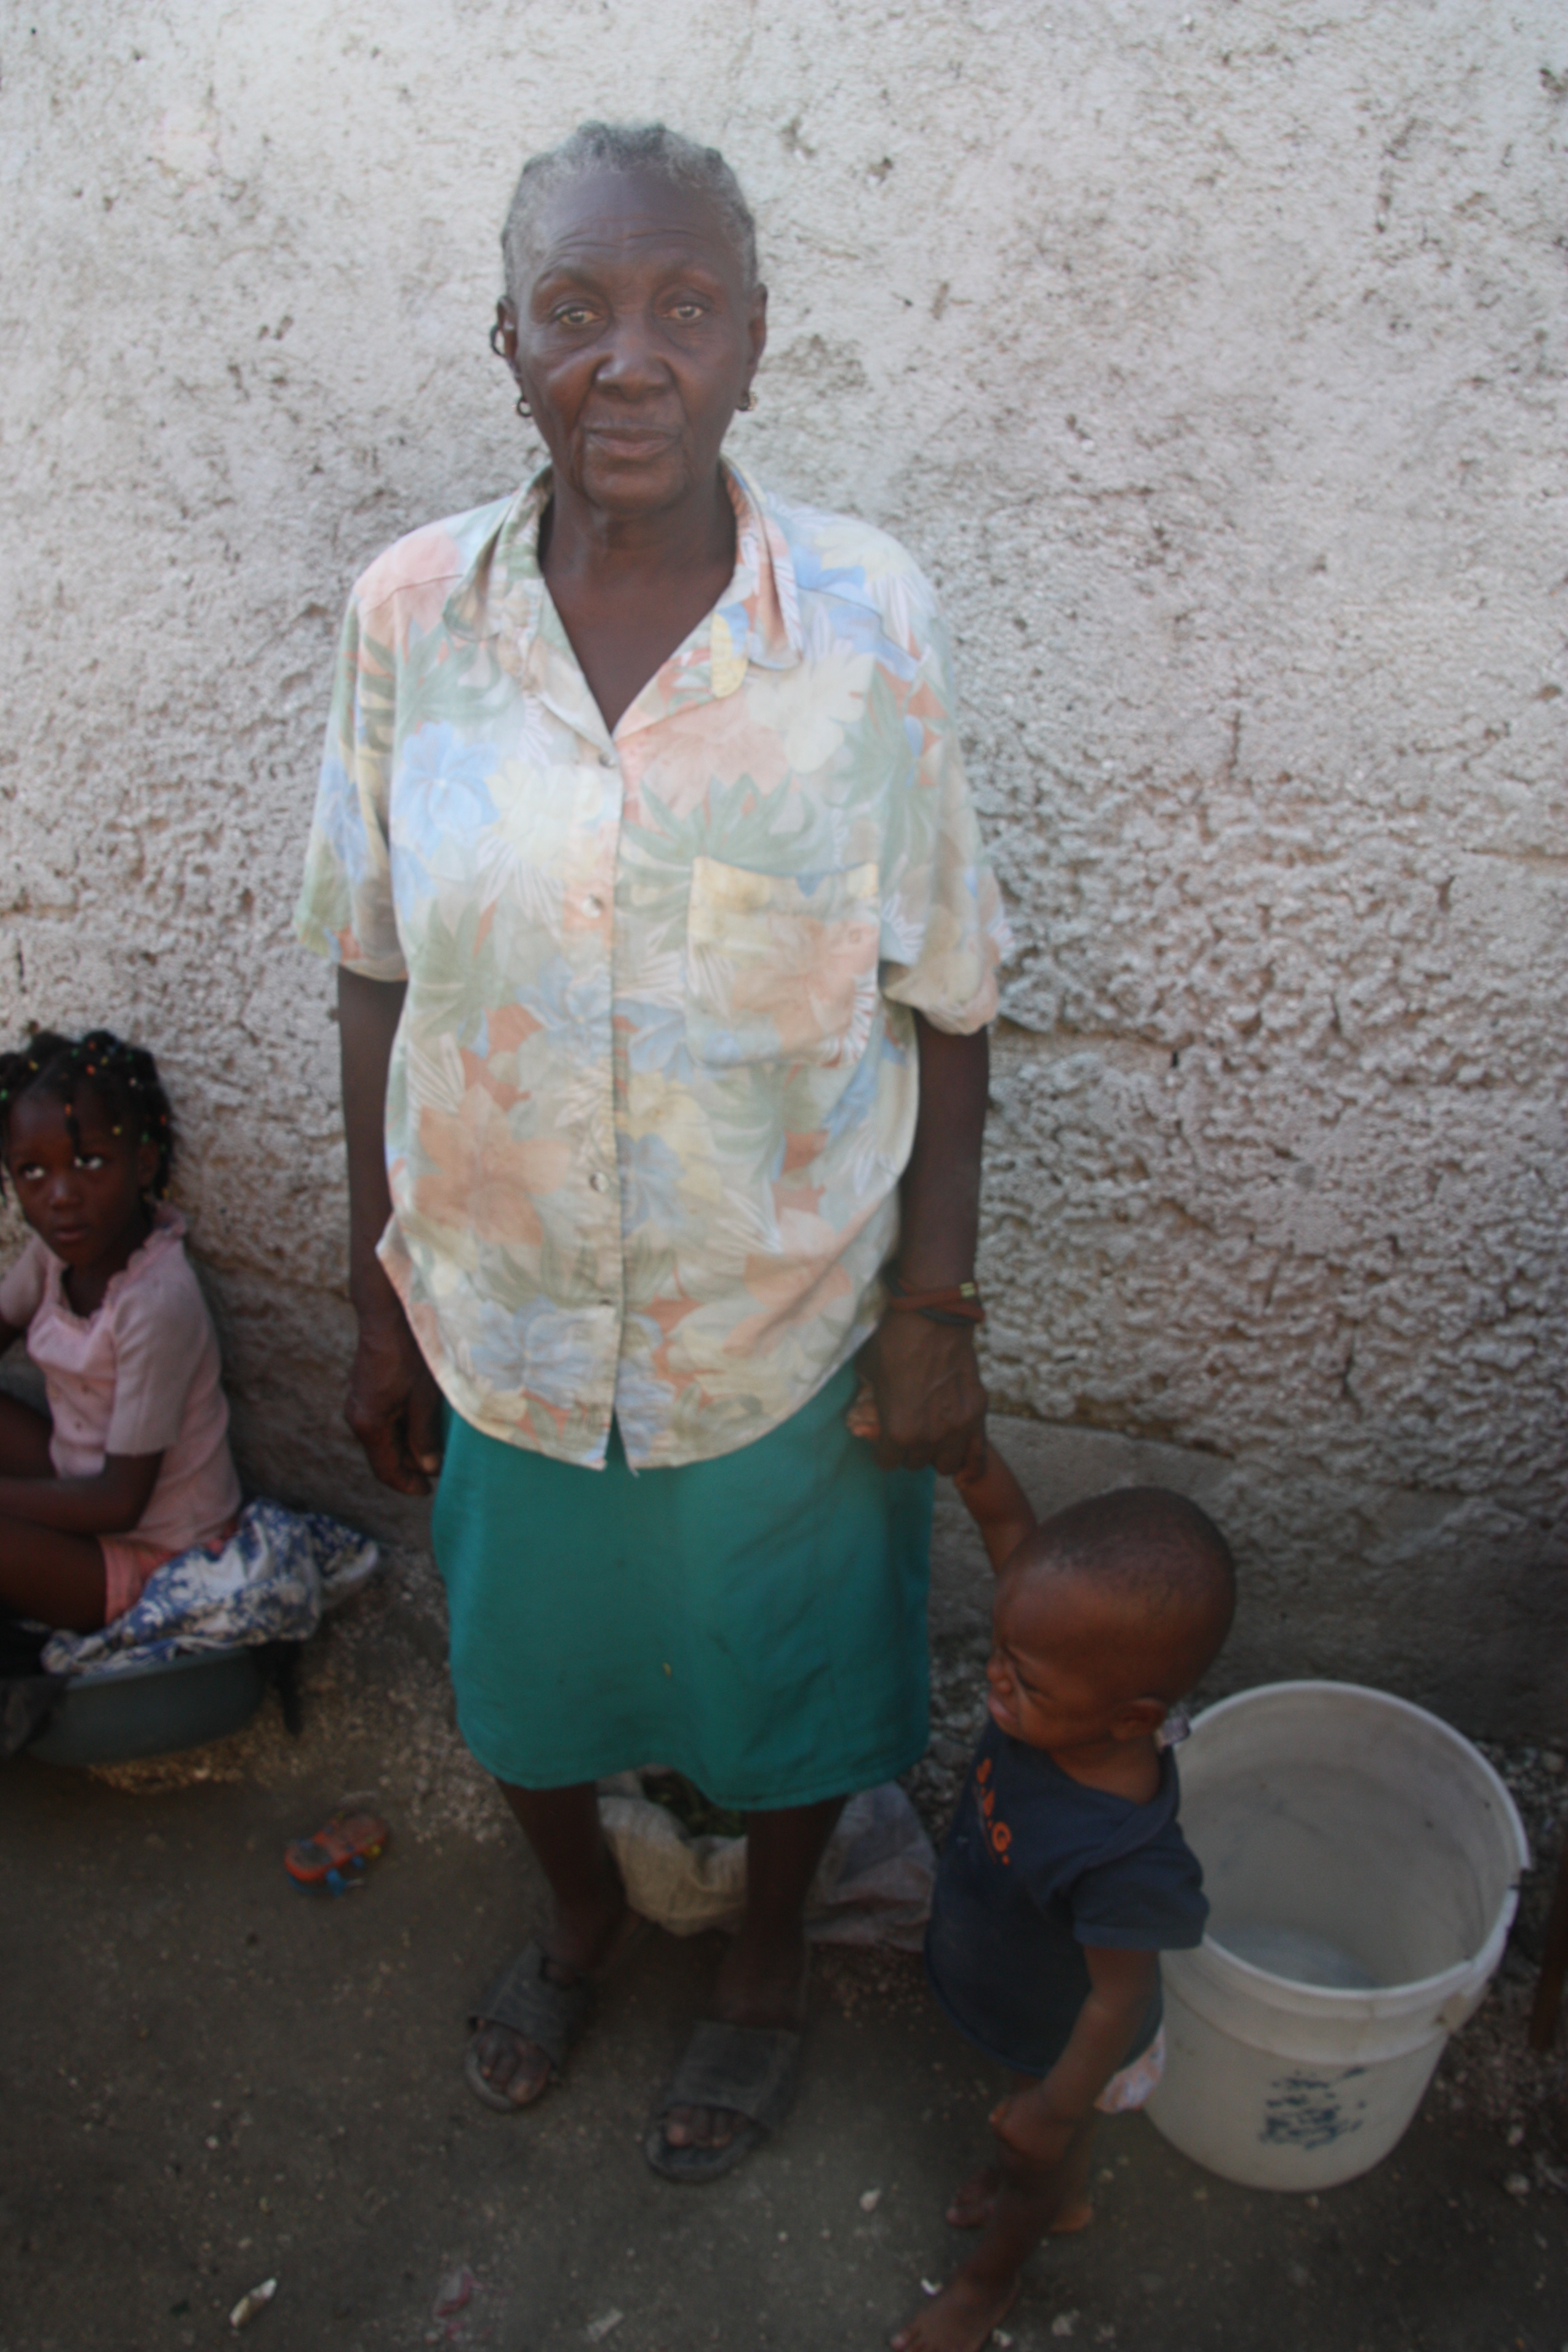 Yolande is the sole caretaker for her 6 young grandchildren